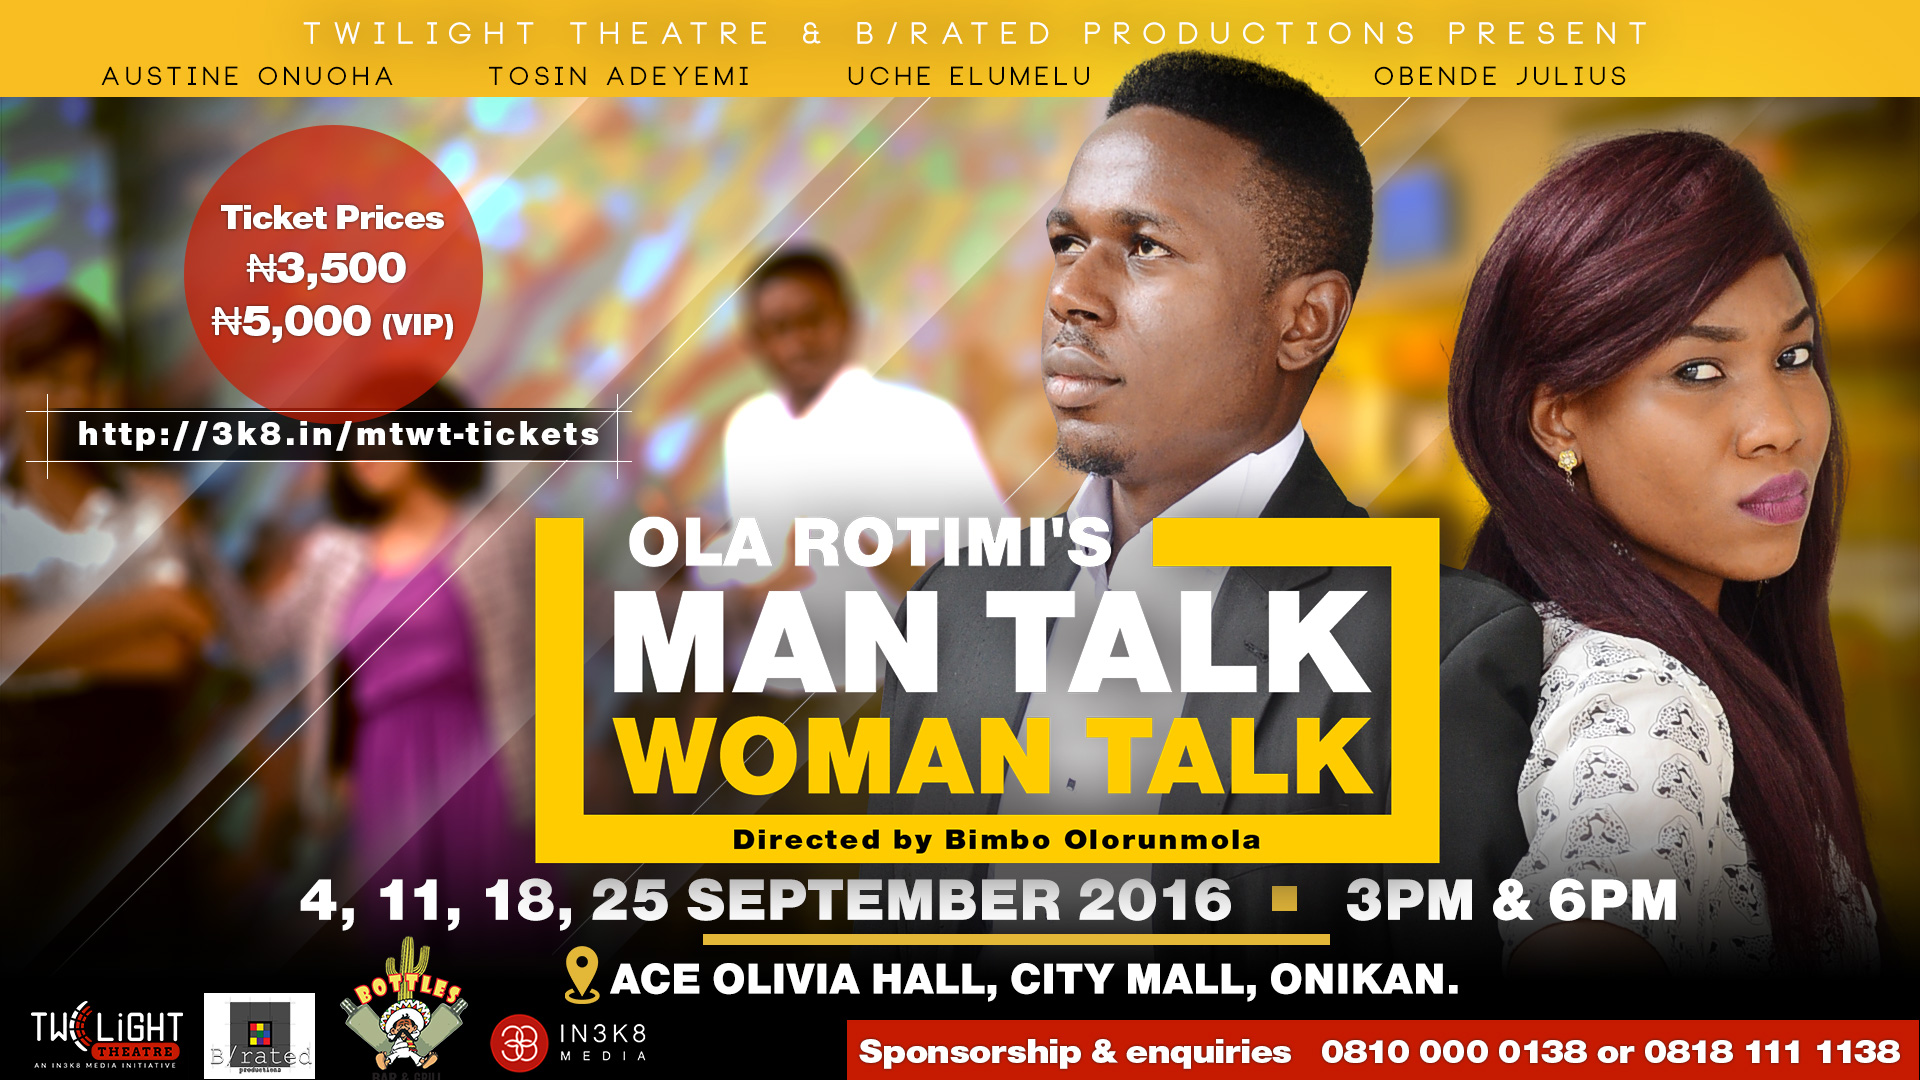 Ola Rotimi's Man Talk, Woman Talk